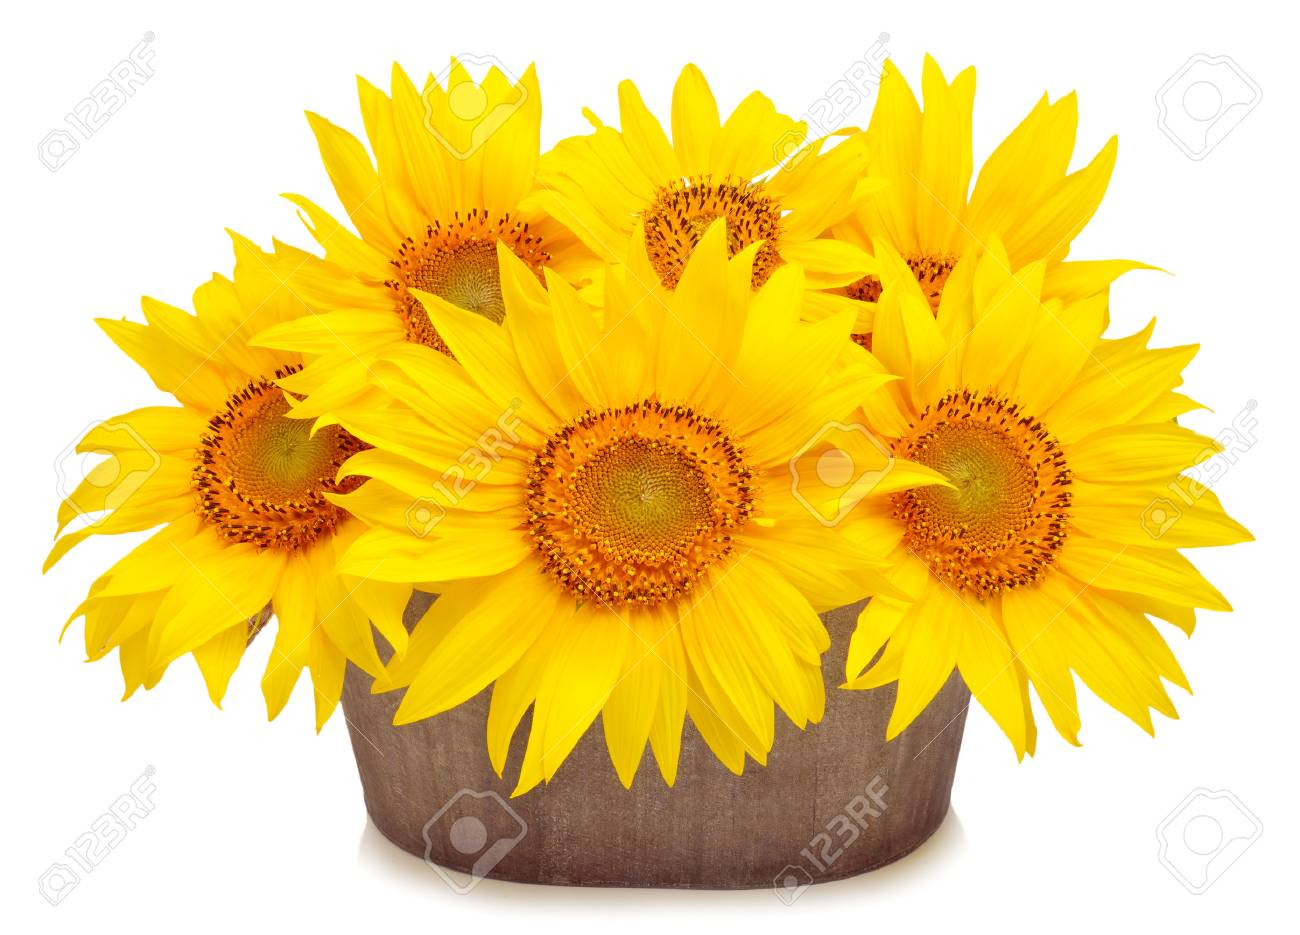 Bouquet of beautiful sunflowers in pod isolated on white background - 46192820